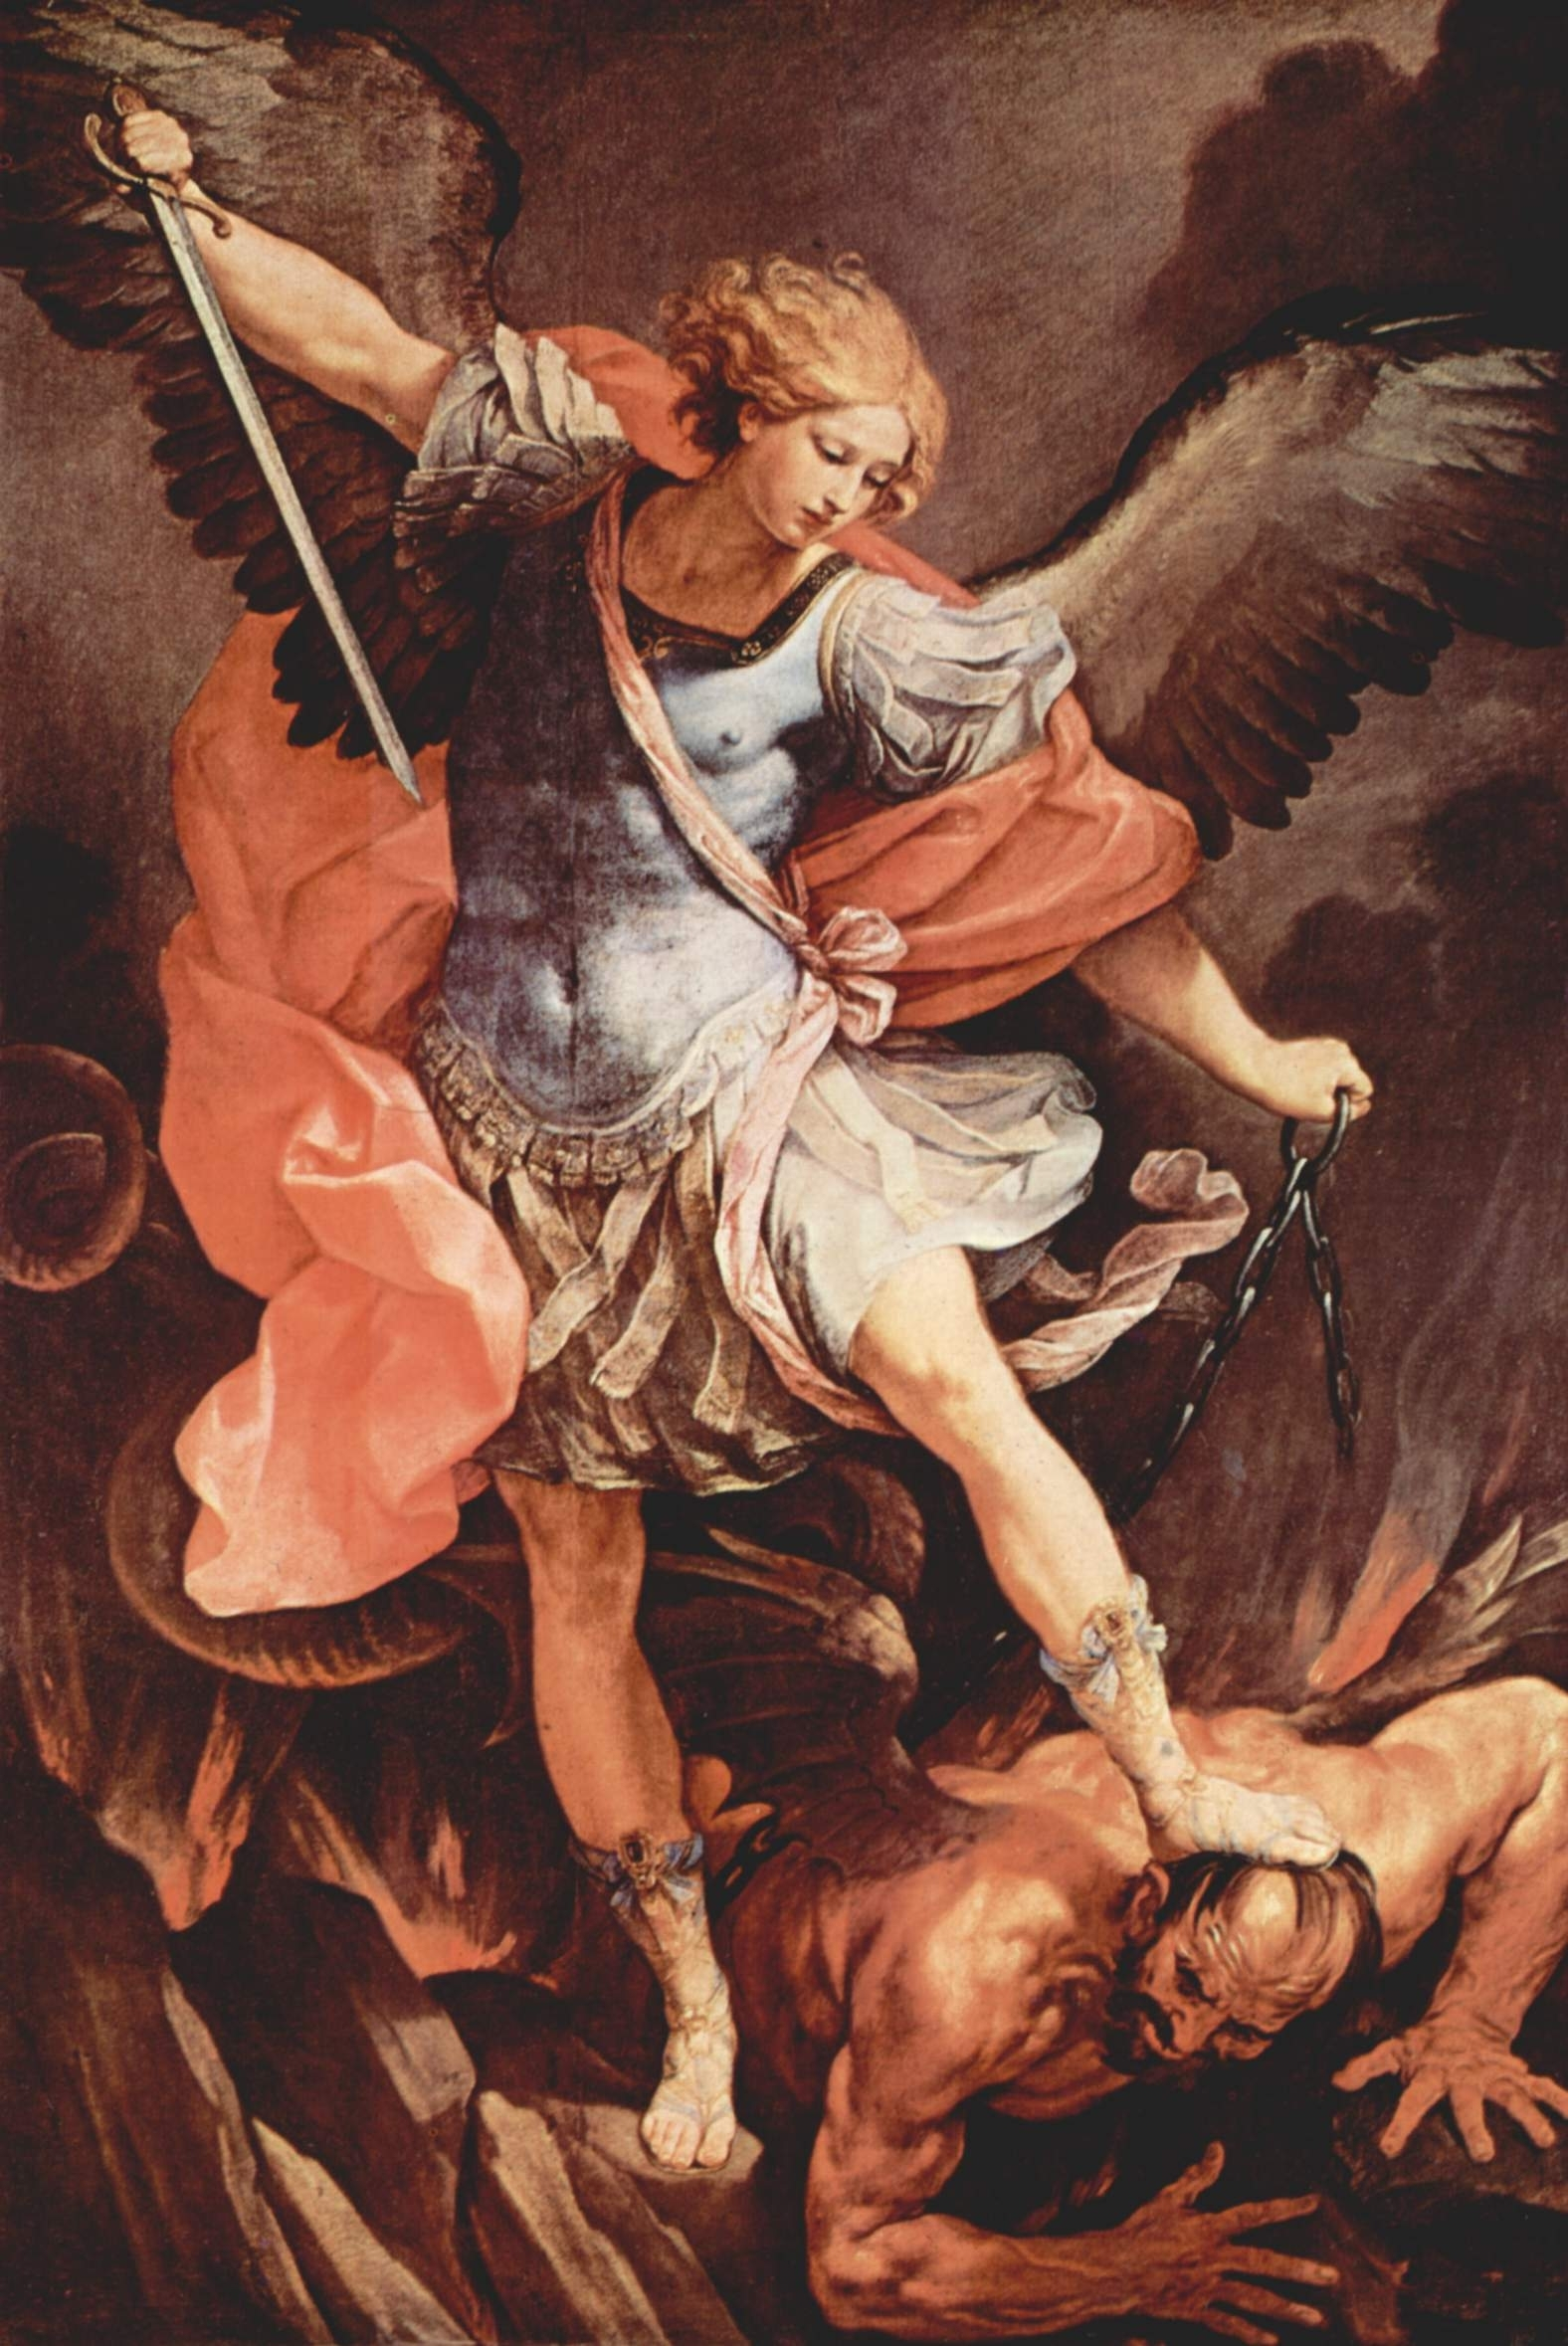 michael (archangel) - wikipedia